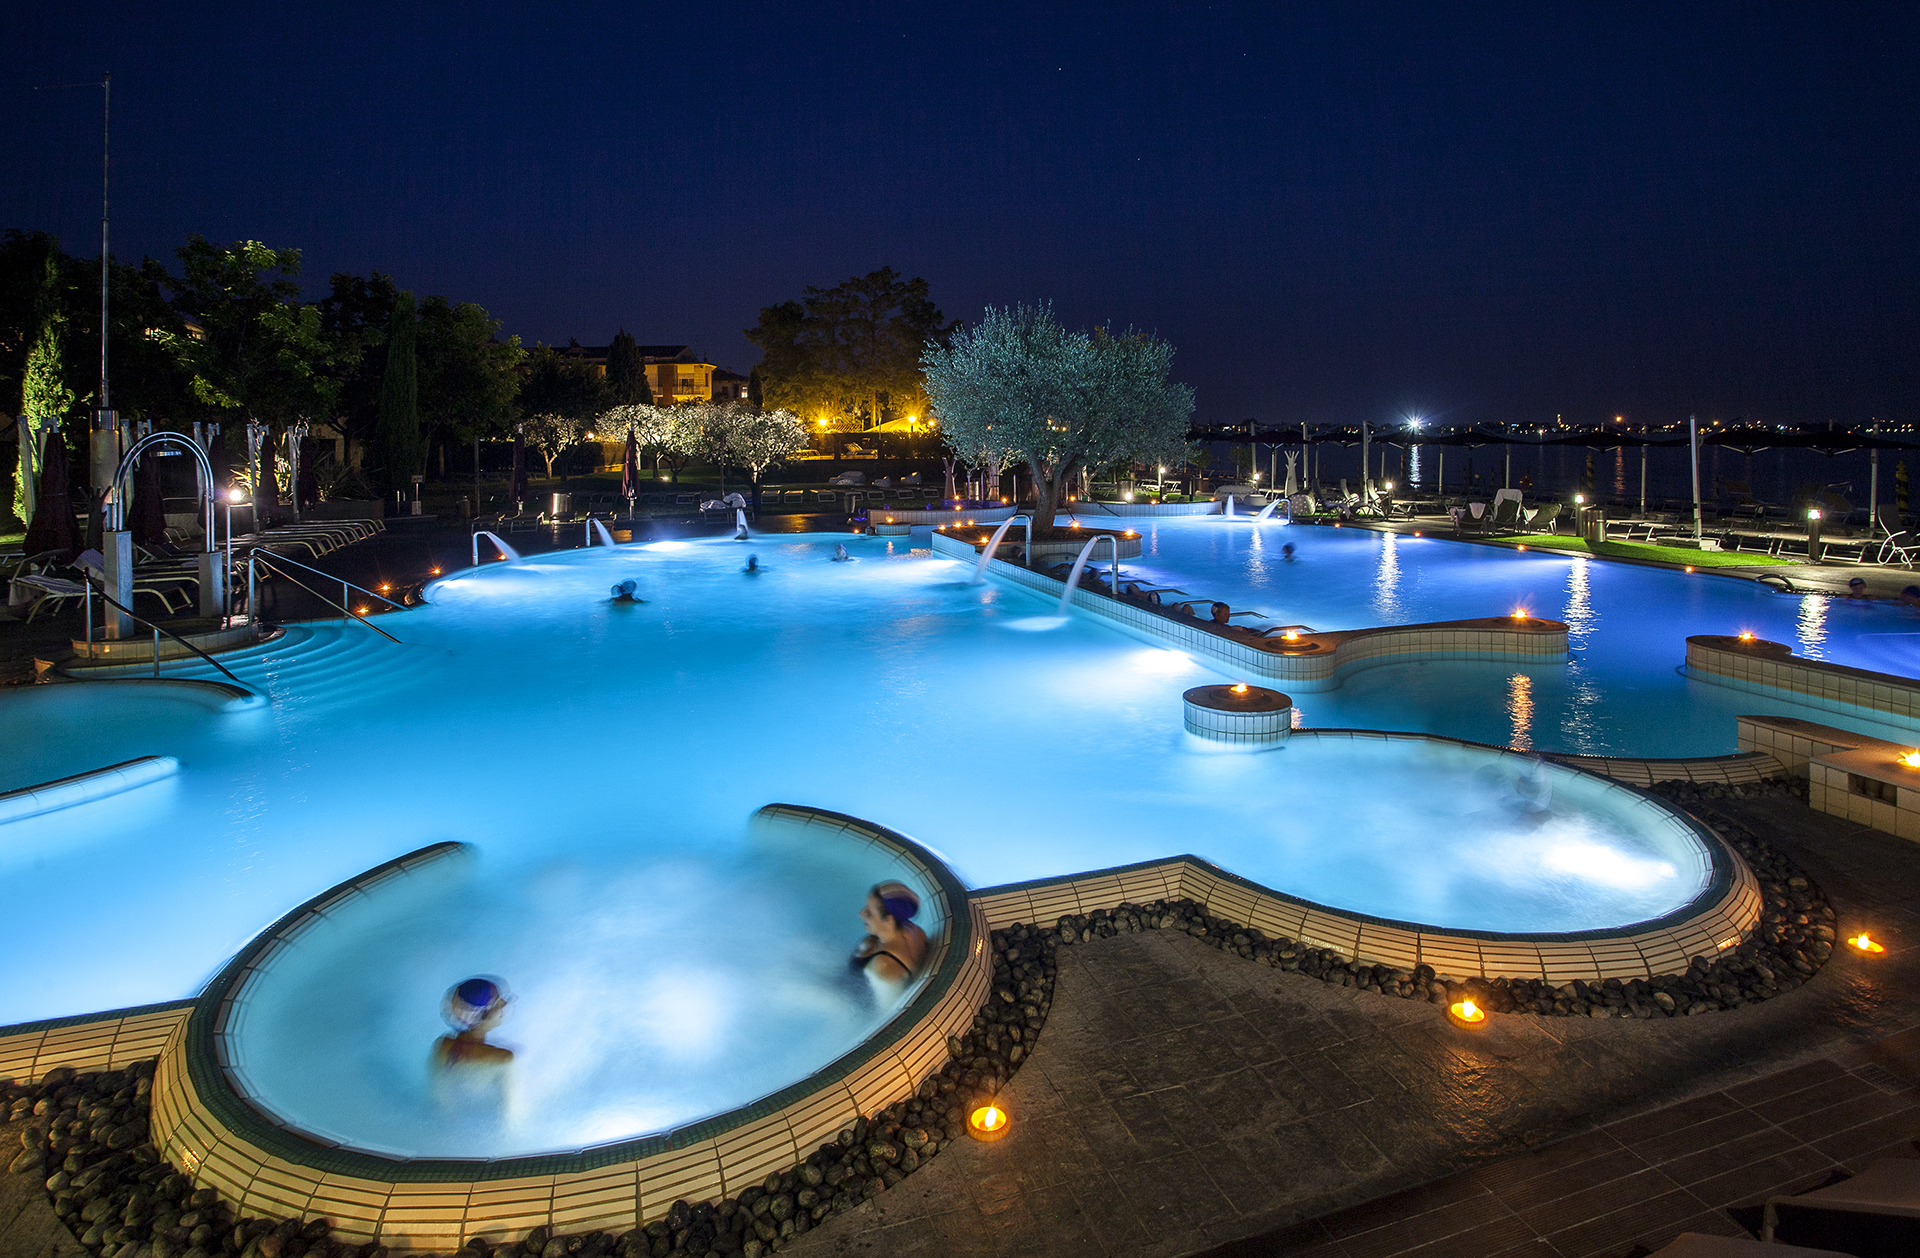 terme di sirmione image gallery - hcpr